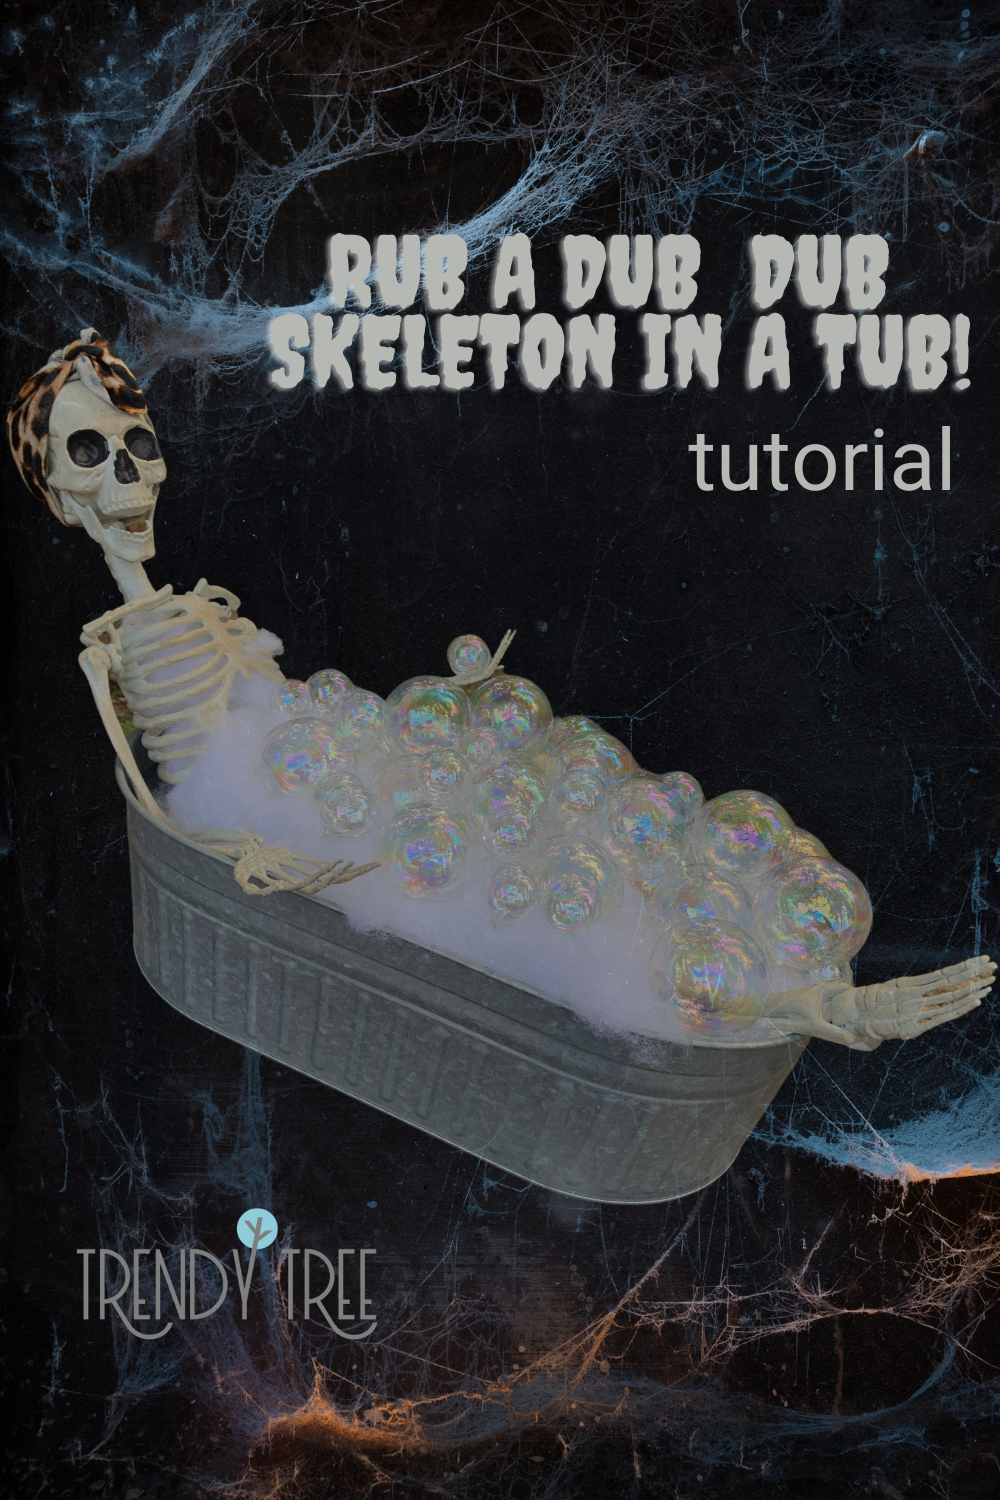 skeleton in a tub tutorial